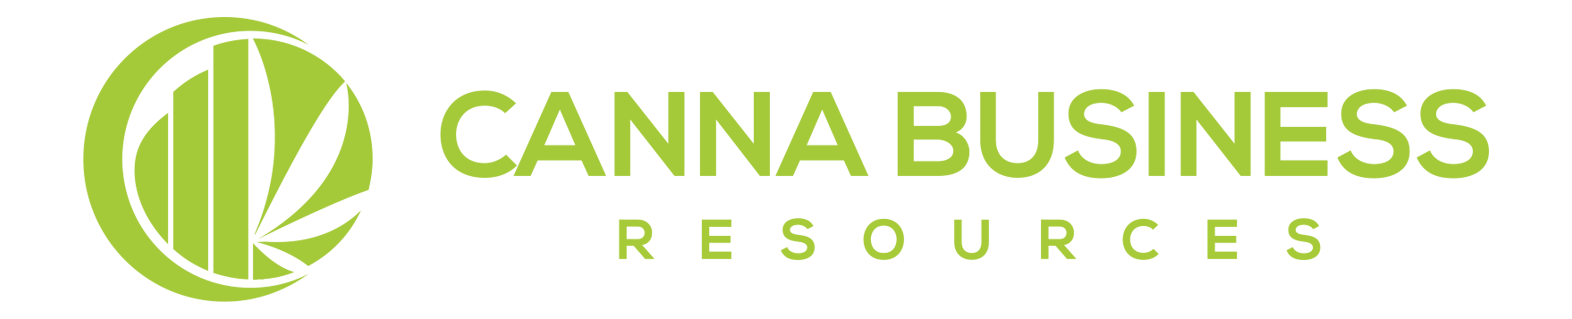 Canna Business Resources